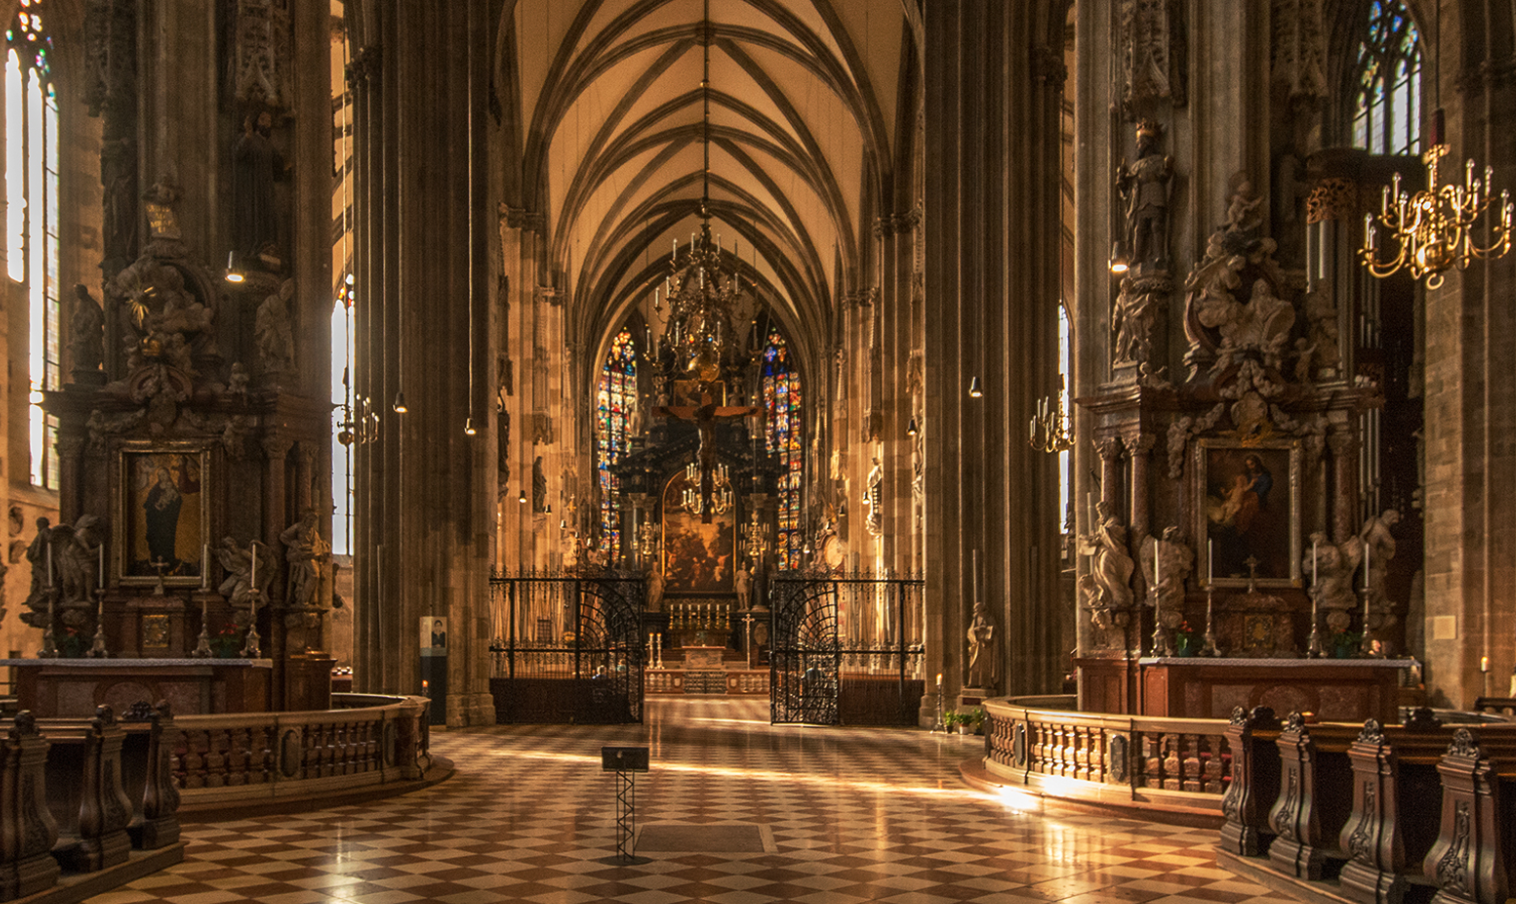 St. Stephan's Cathedral - Vienna, Austria